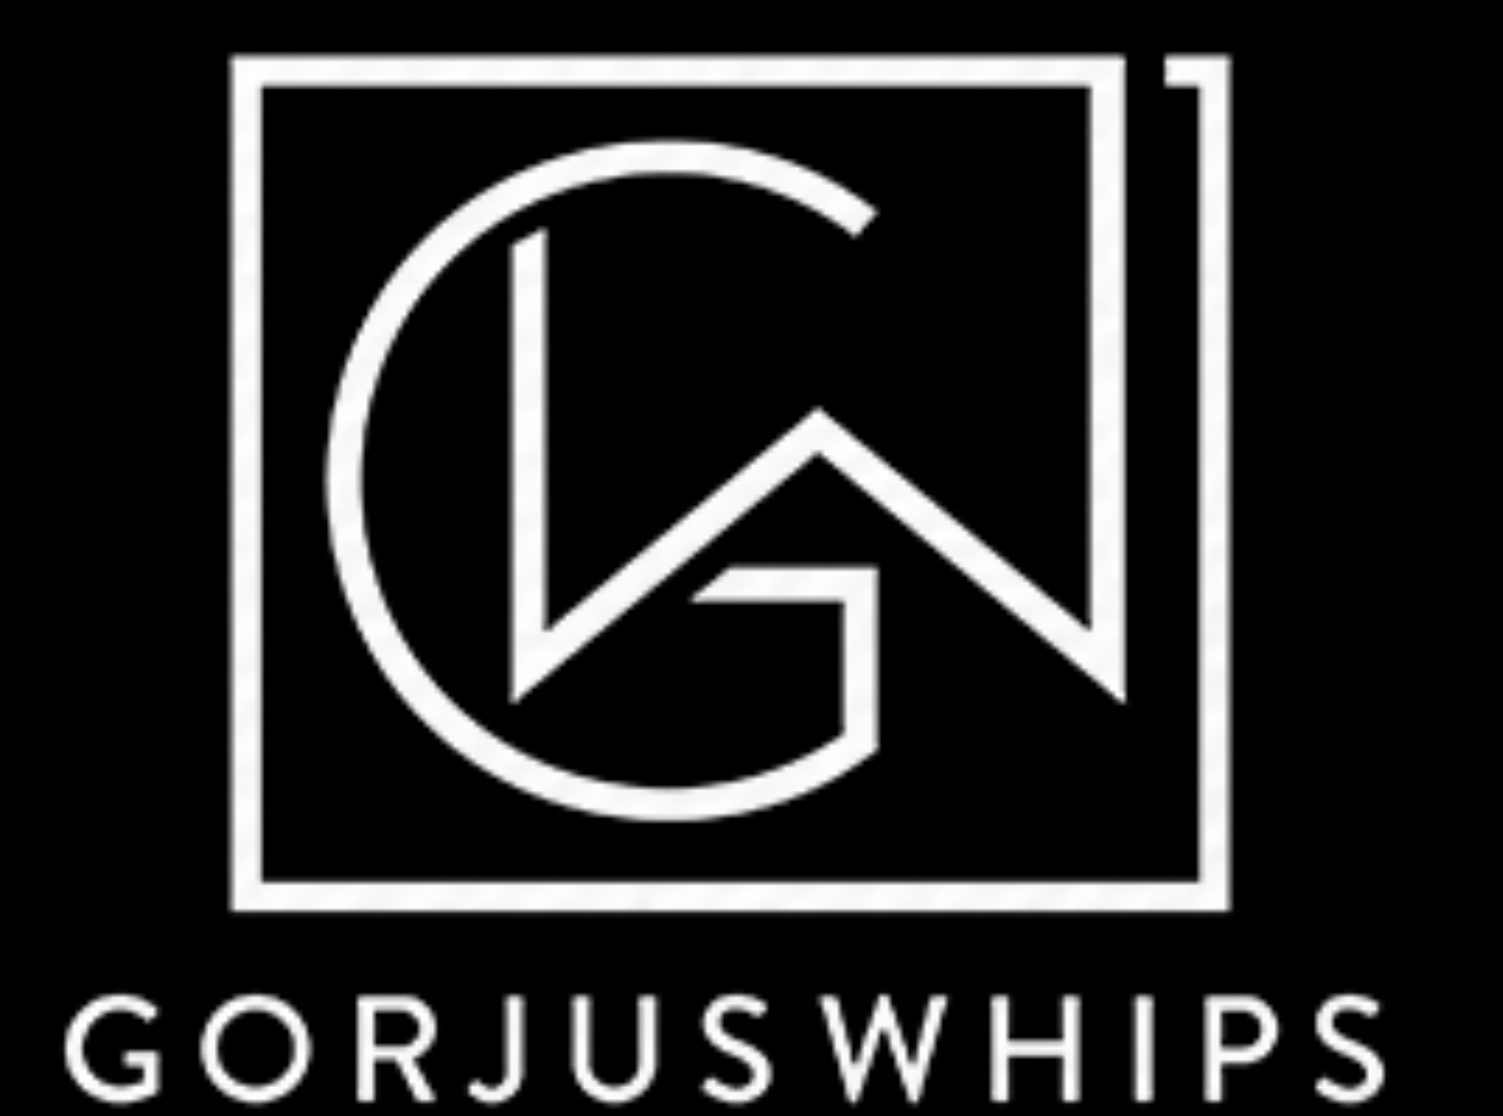 GorJusWhips Skin & Body